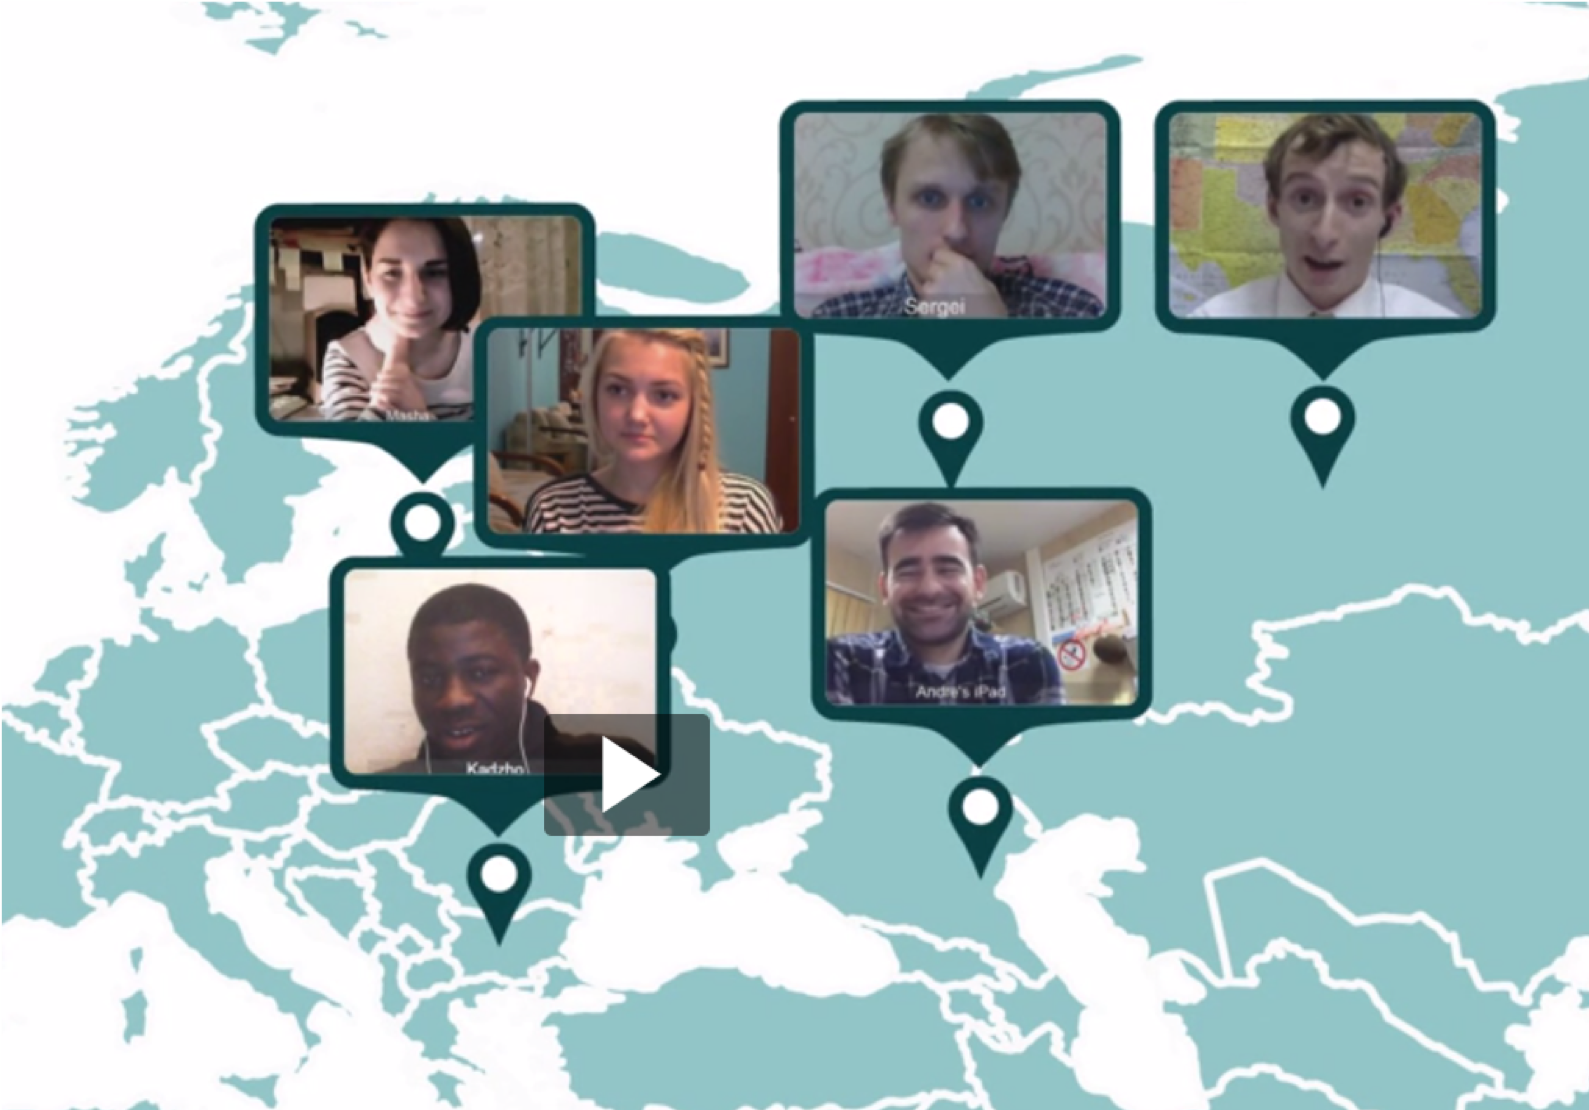 Connecting students from various regions, the virtual gatherings now offered by BYU-Pathway Worldwide allows students from almost anywhere in the world to participate in the online learning programs.